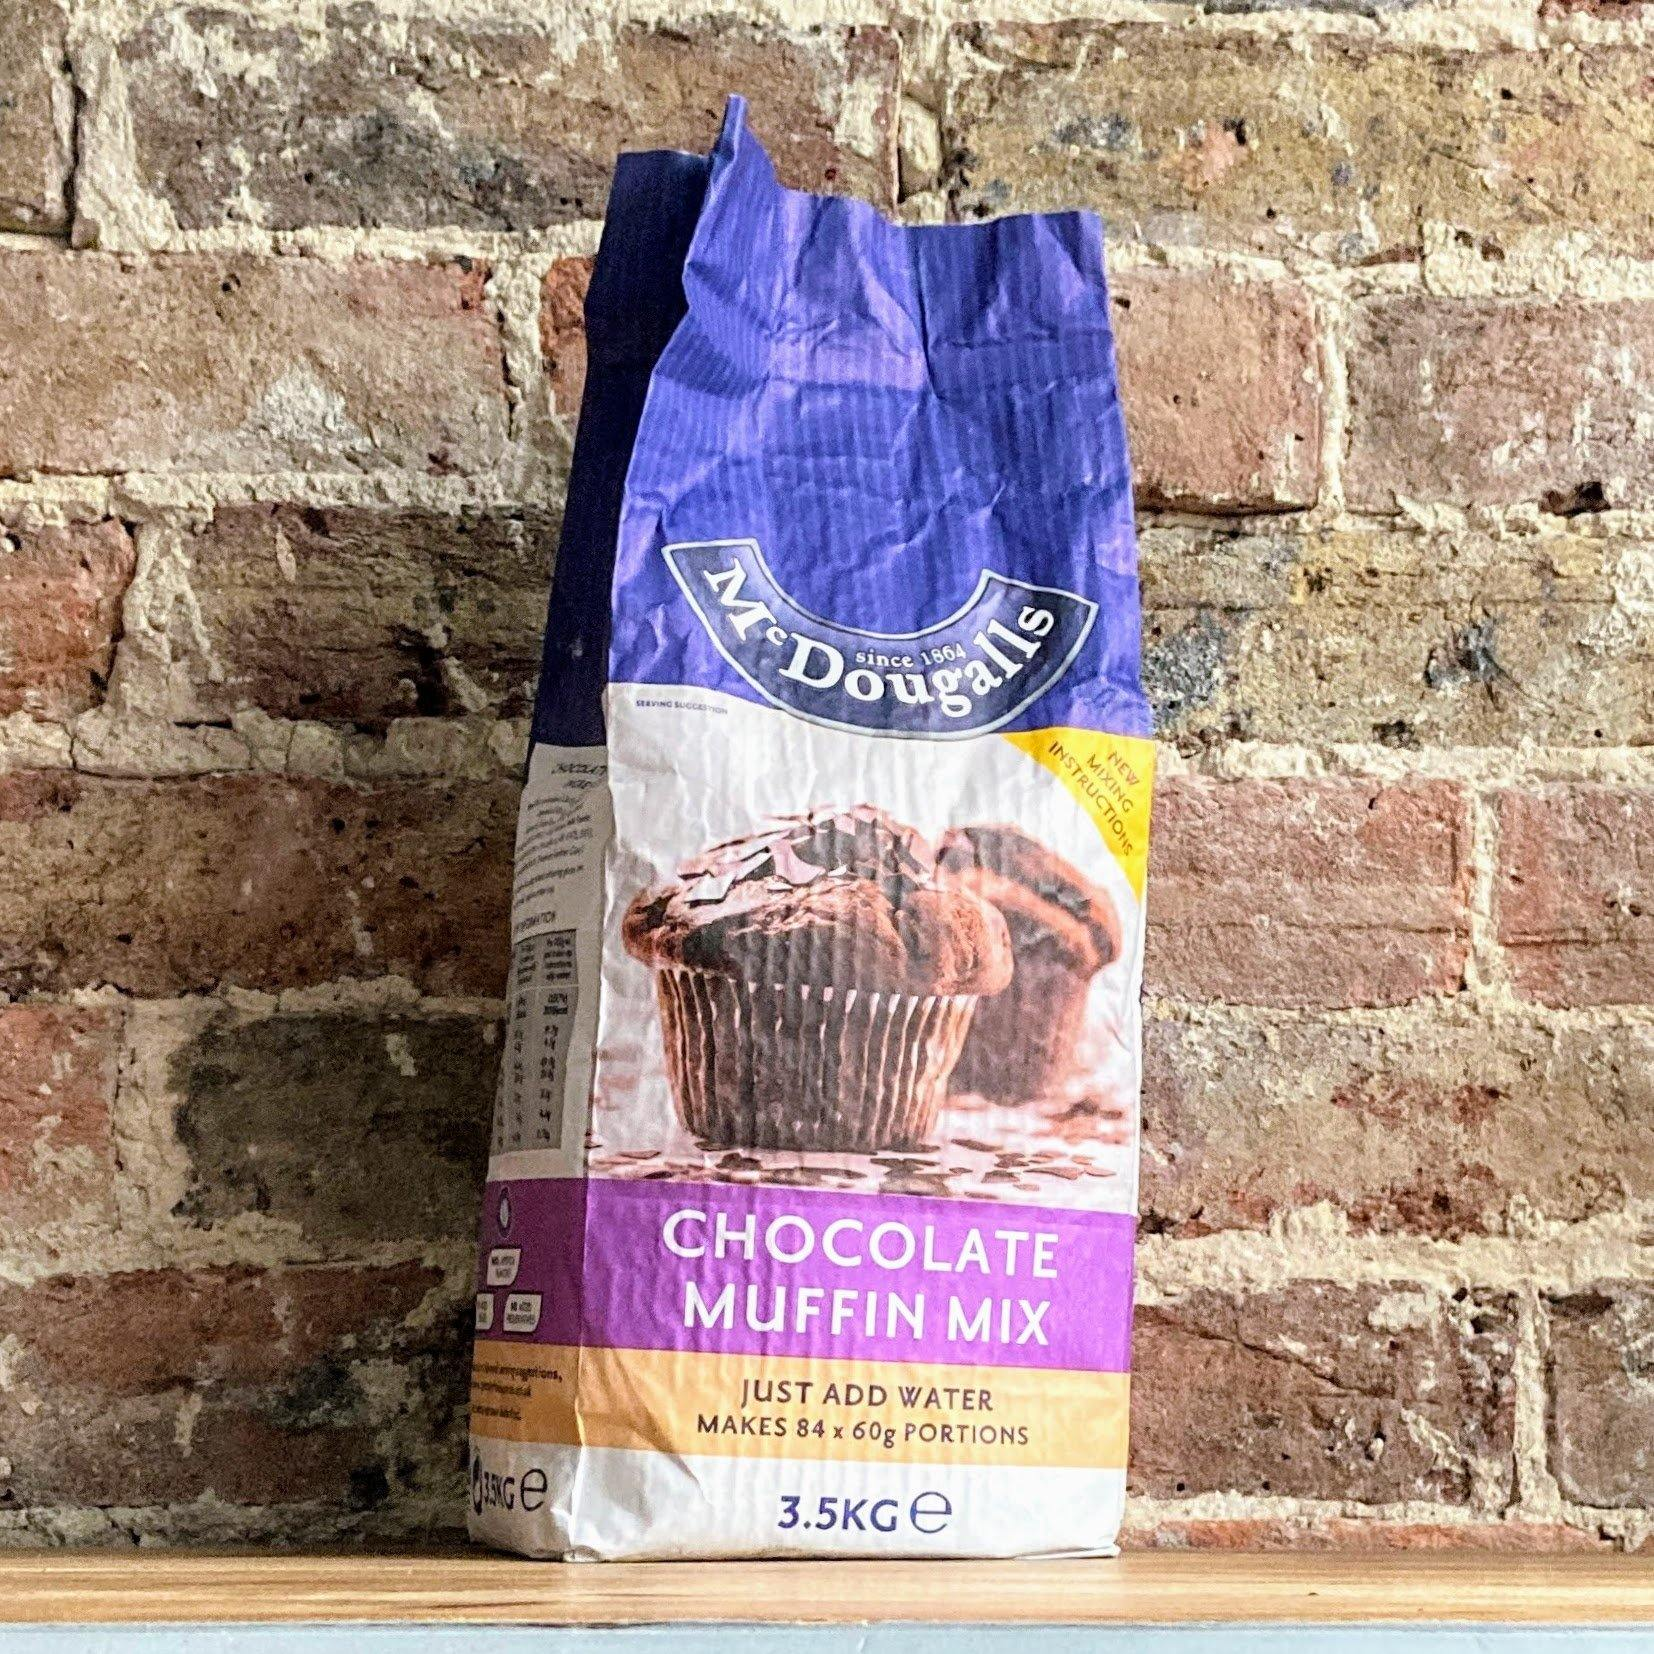 McDougalls® Chocolate Muffin Mix 3.5kg - Ratton Pantry